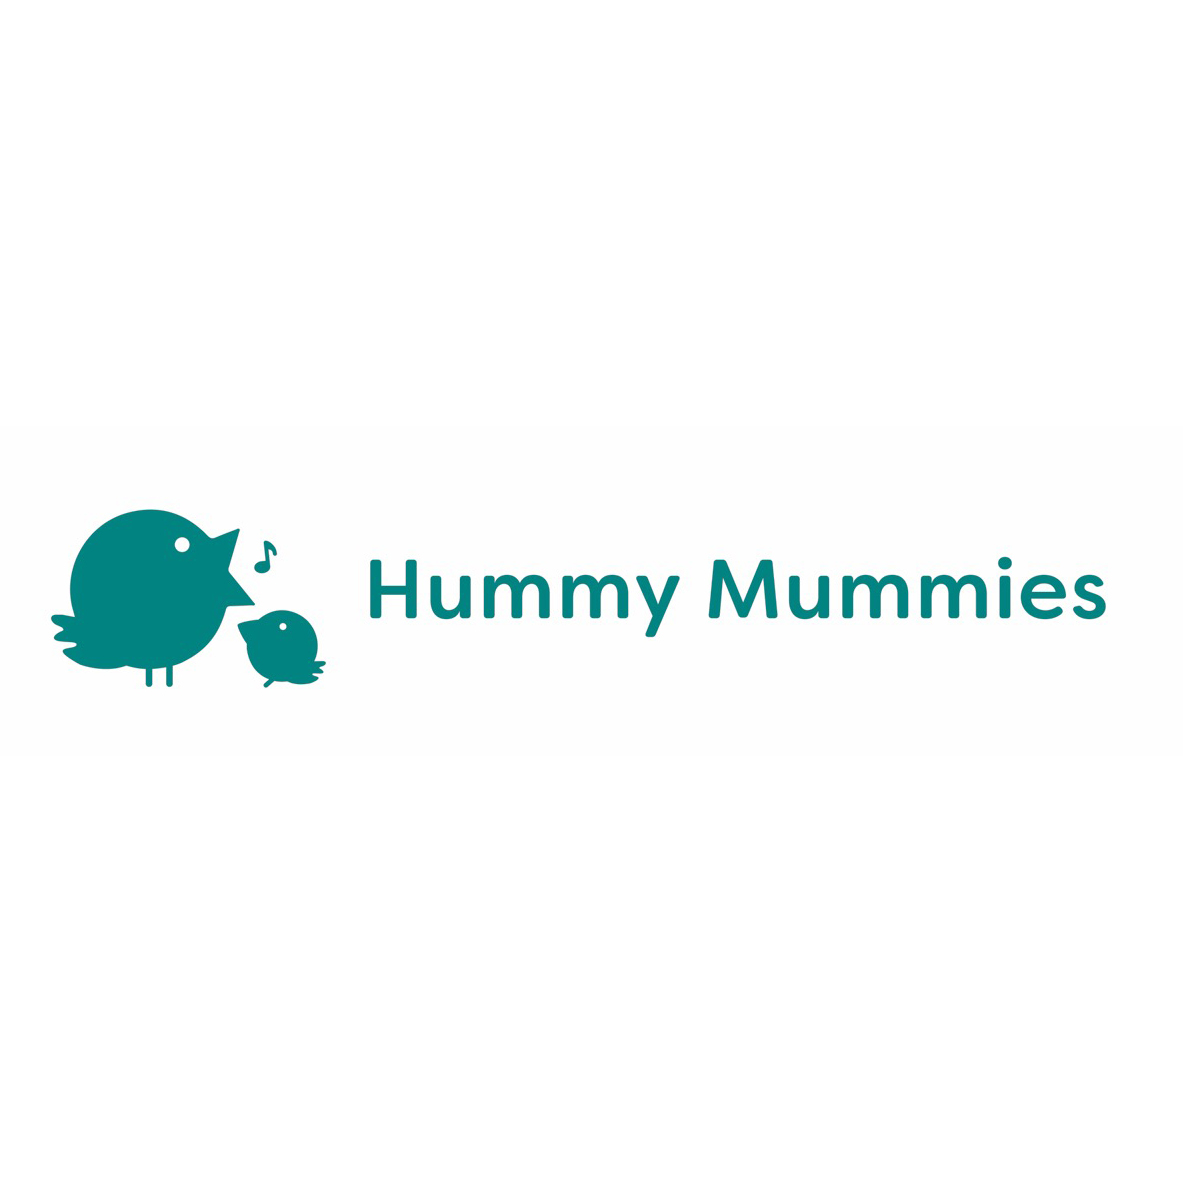 Hummy Mummies